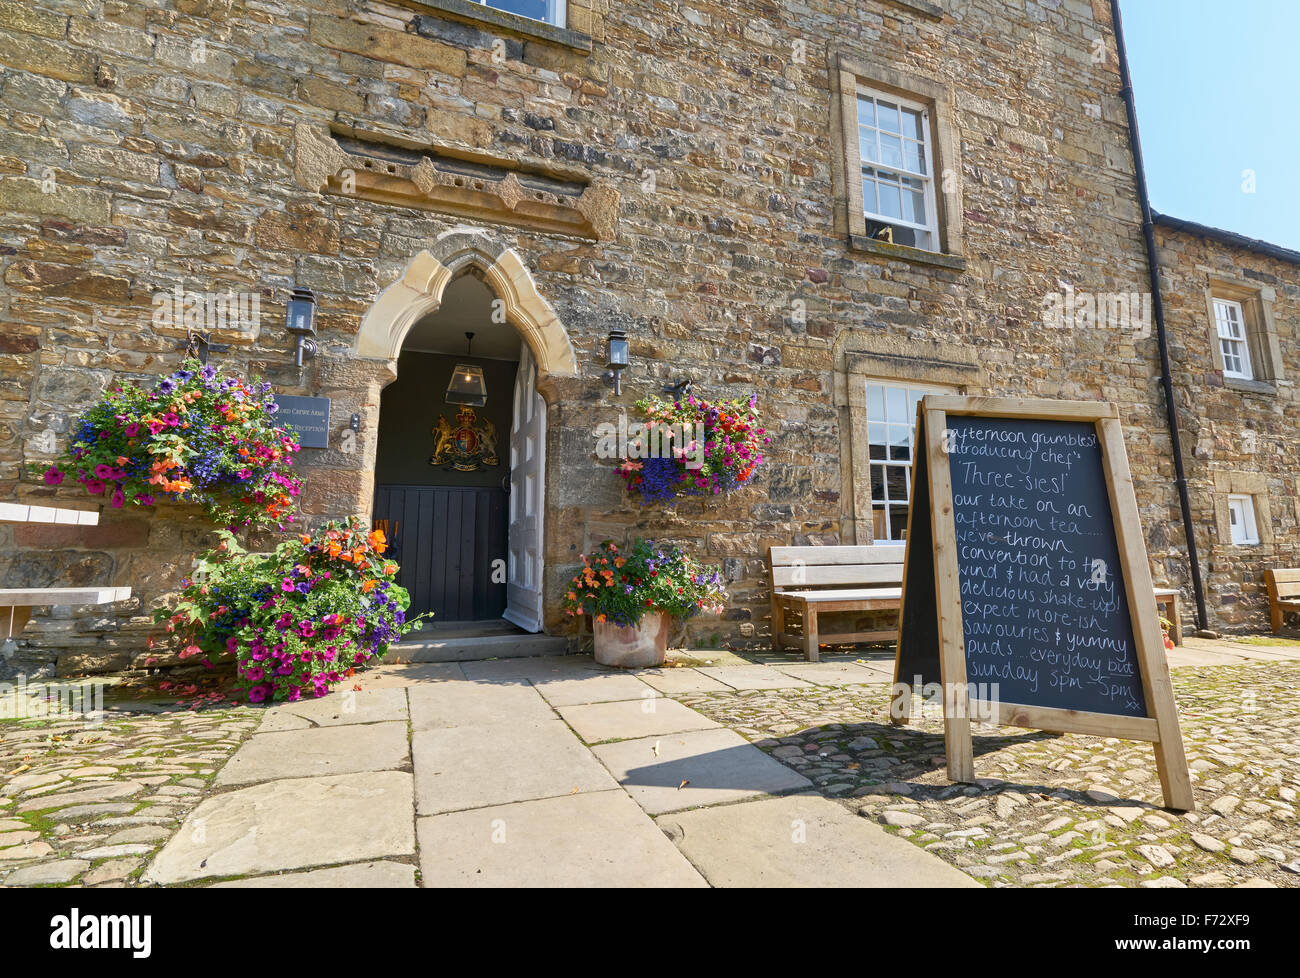 Lord Crewe Hotel, Blanchland village in County Durham, English countryside. - Stock Image